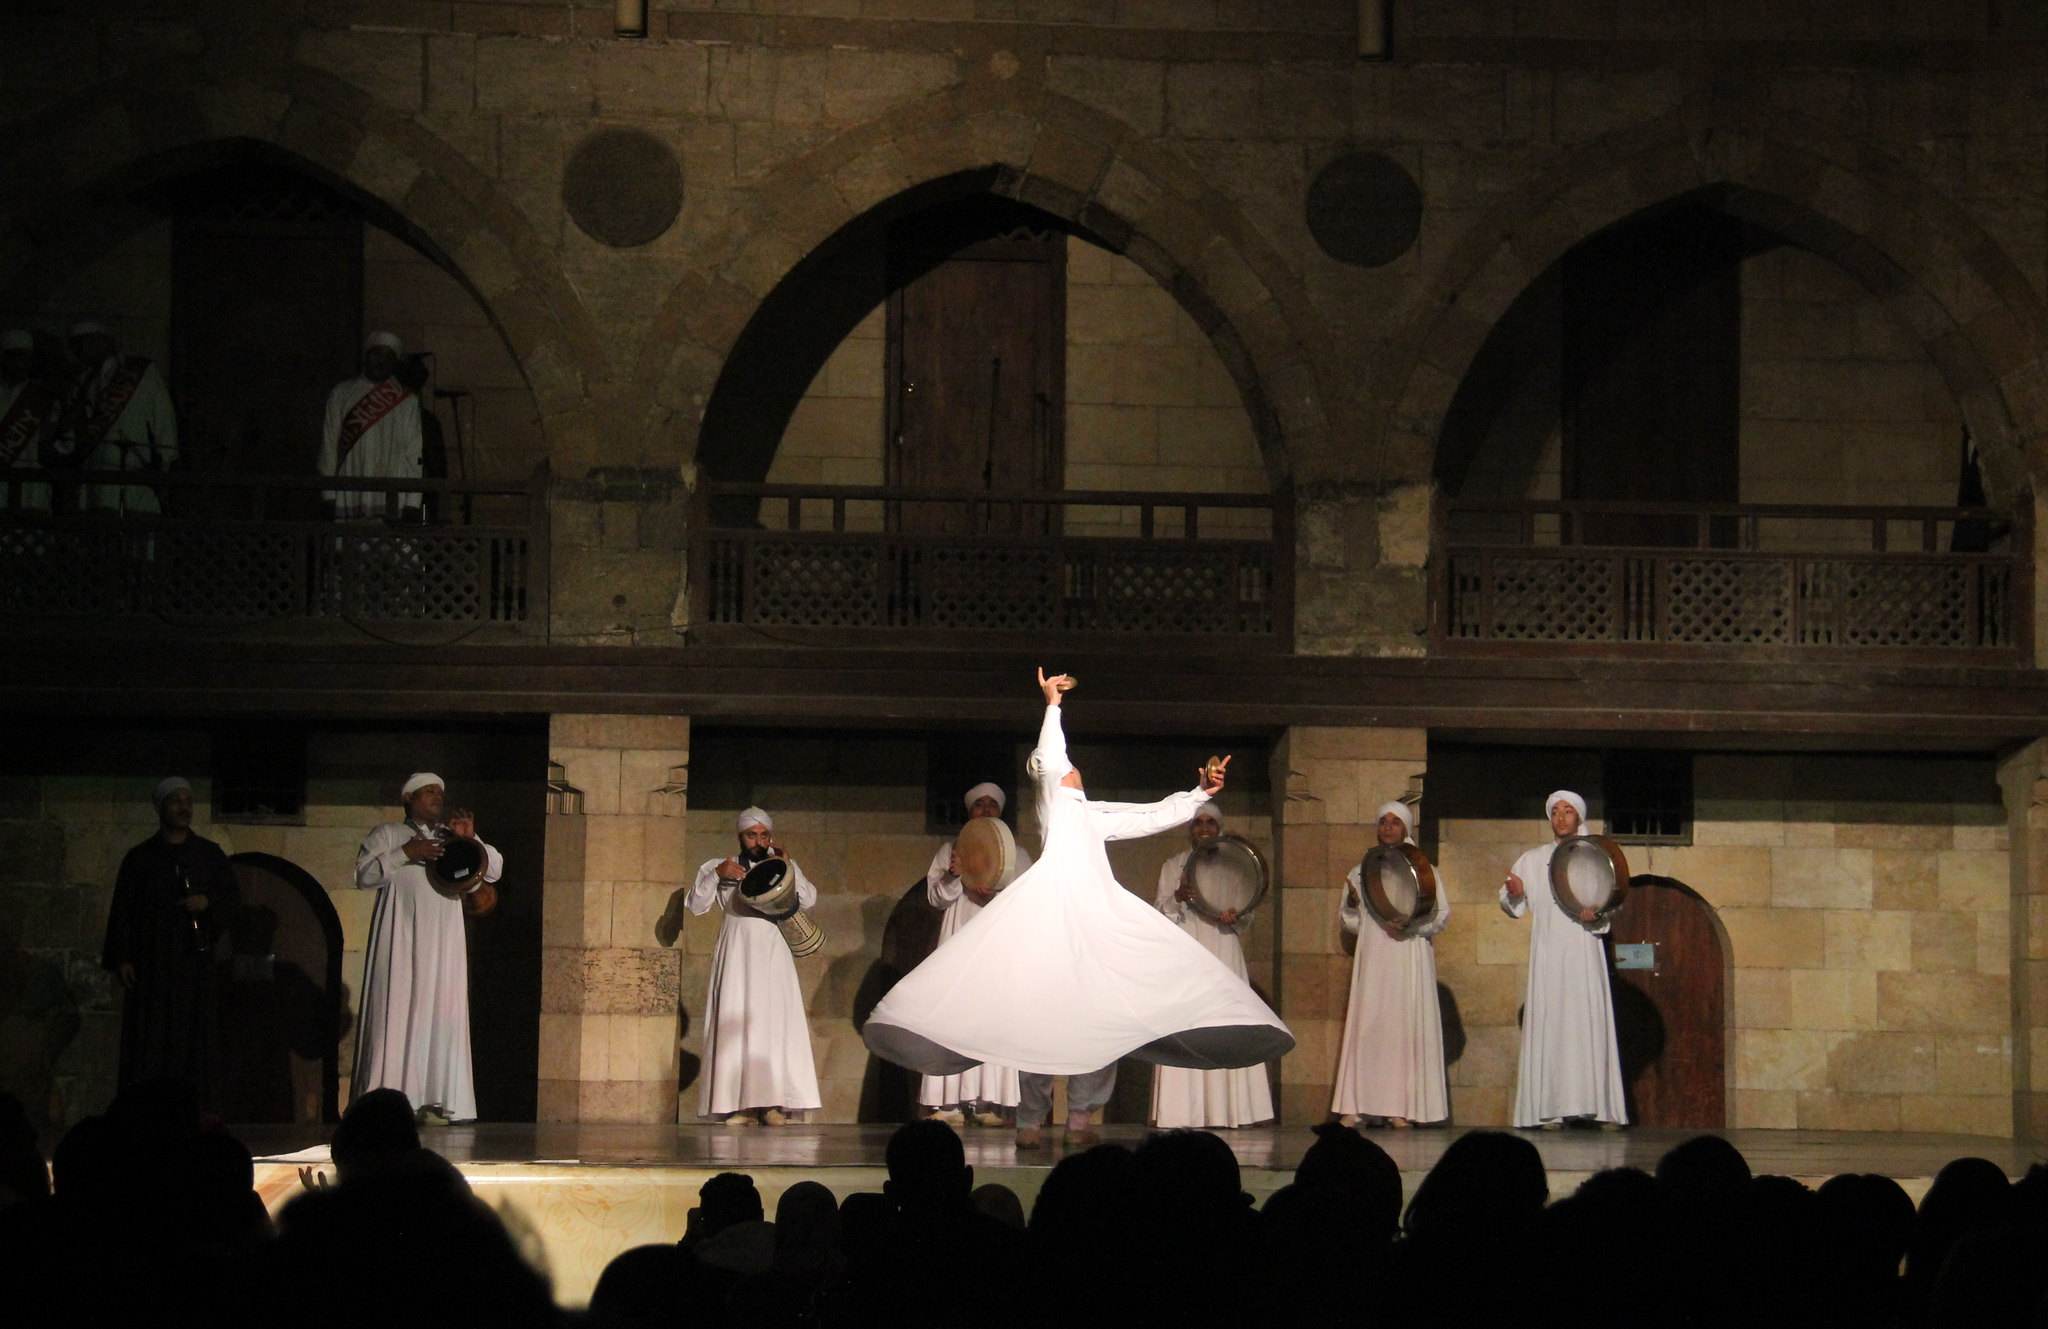 Tanoura dance originated in Syria